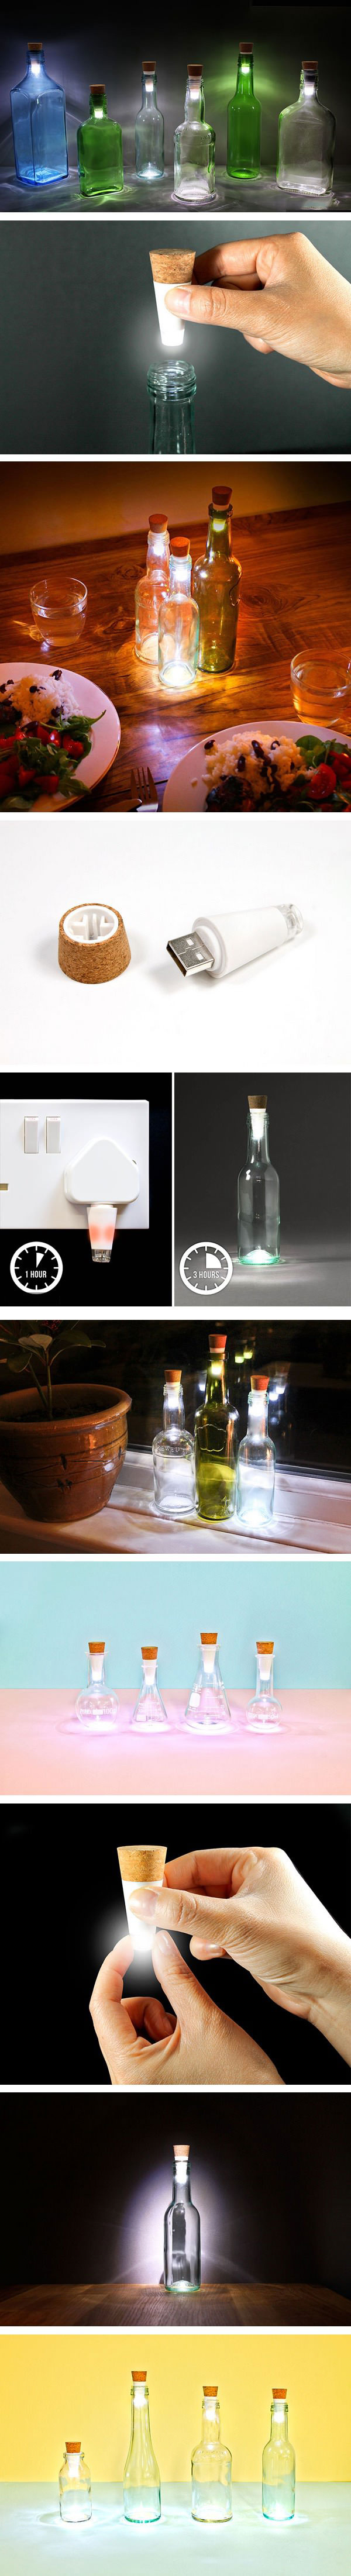 you can turn your old bottles into lamps with rechargeable led corks